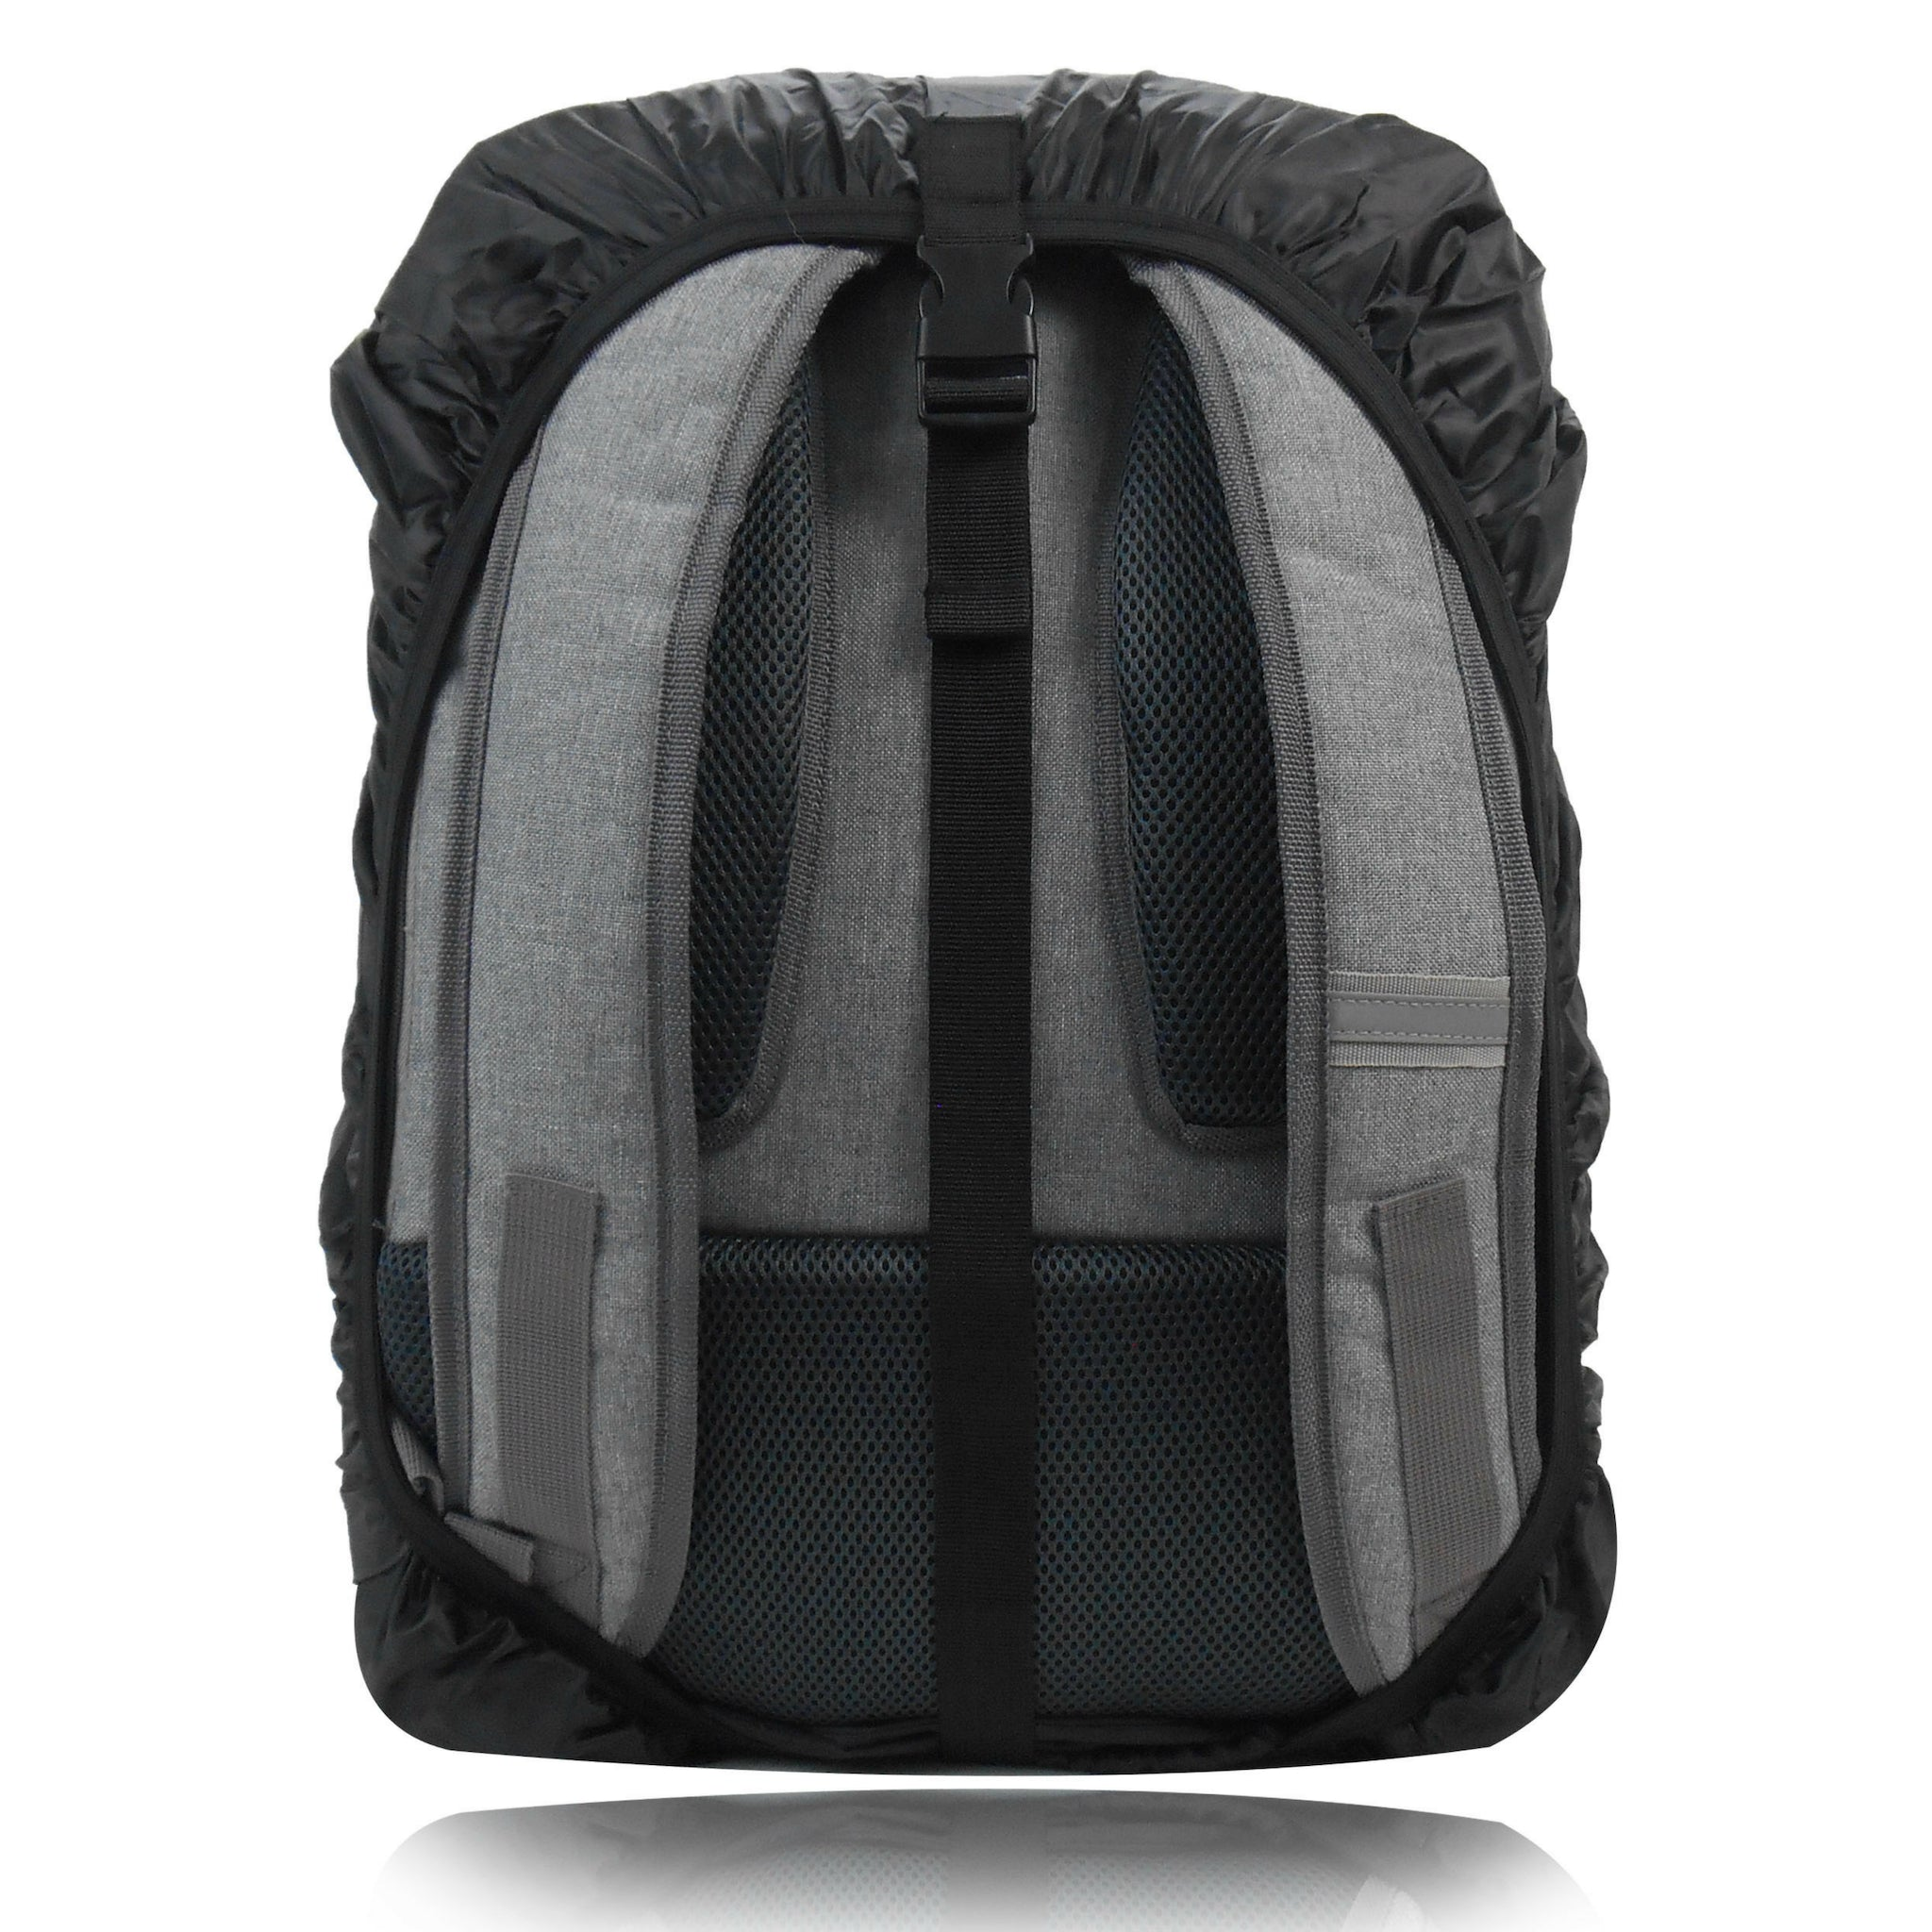 Atmos Creek TRILL water proof rain cover for backpacks with inbuilt pouch for packing and hanging